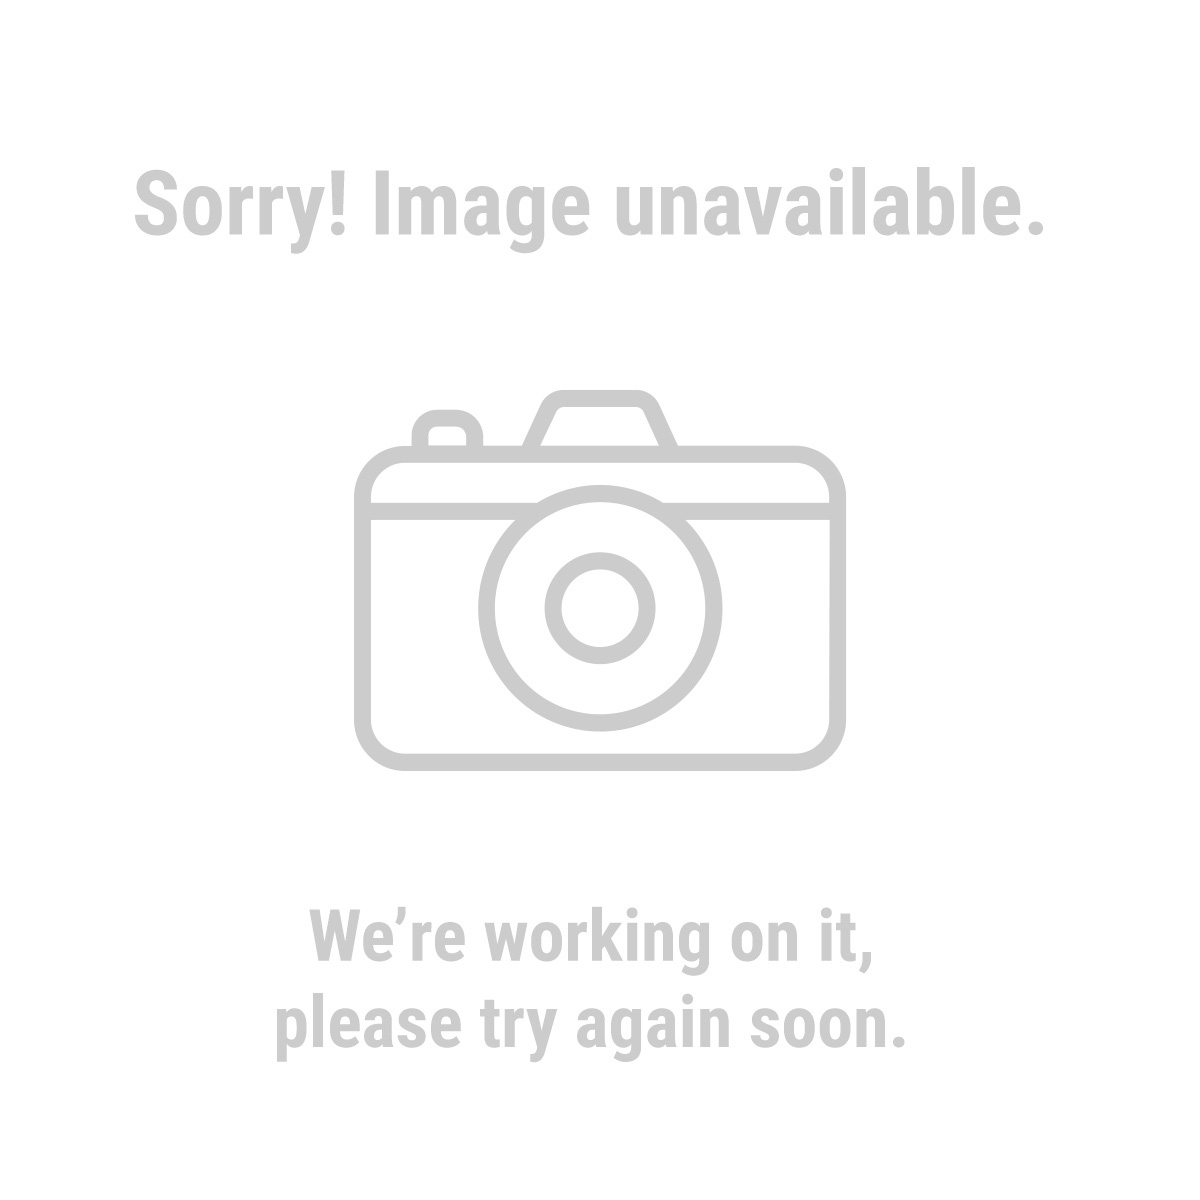 Bunker Hill Security® 62534 60 LED Solar Security Light